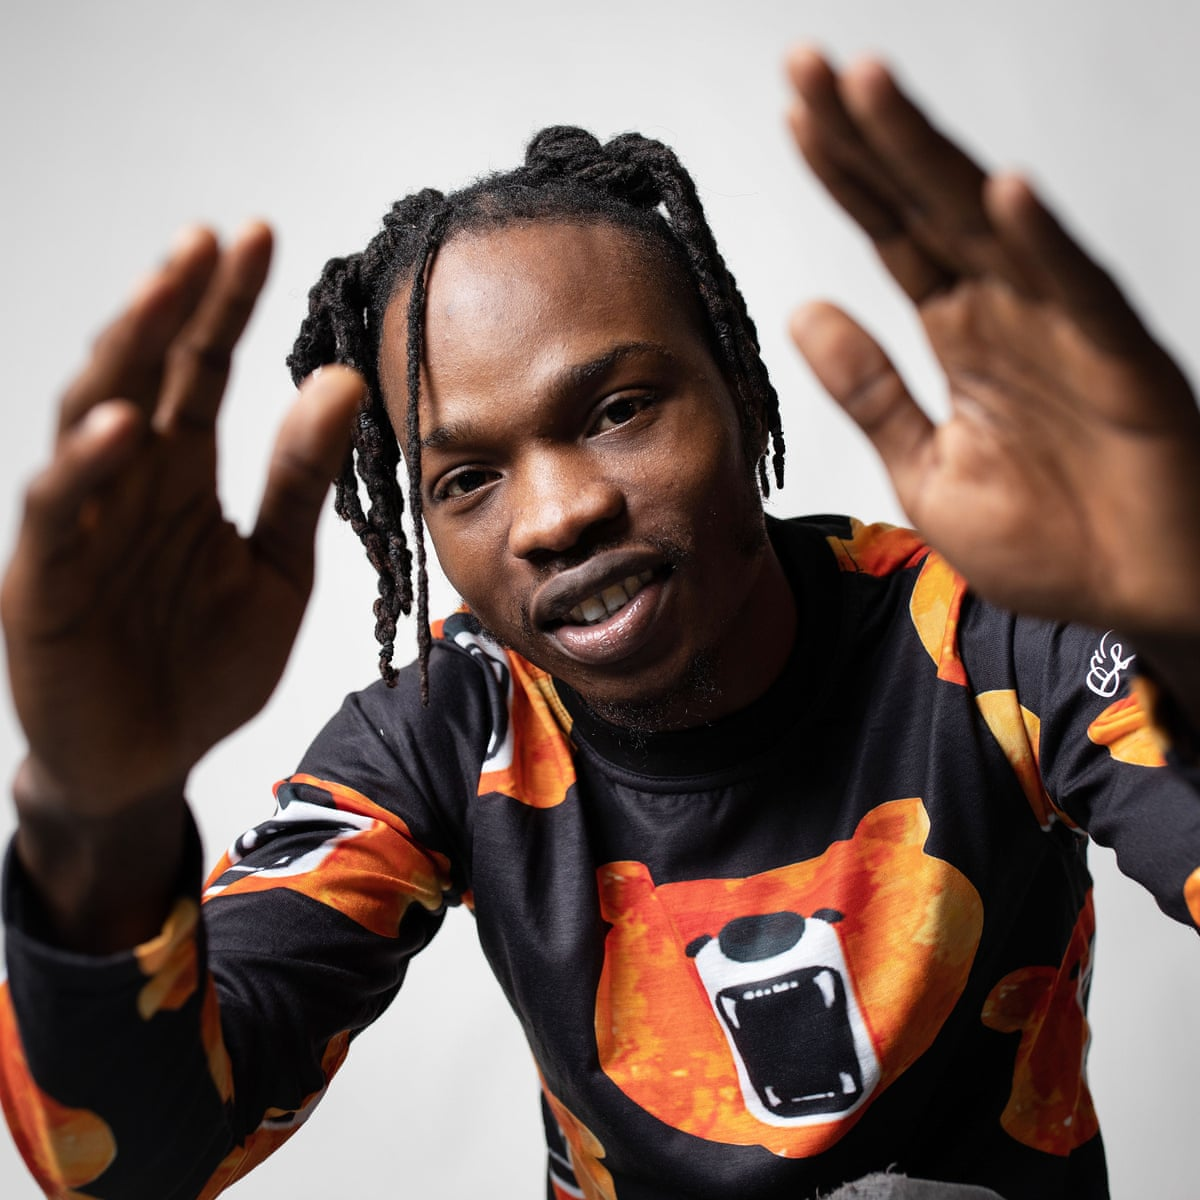 naira-marley-arrested-charged-fined-oprah-billboard-breonna-taylor-willian-arsenal-chelsea-latest-news-global-world-stories-friday-august-2020-style-rave